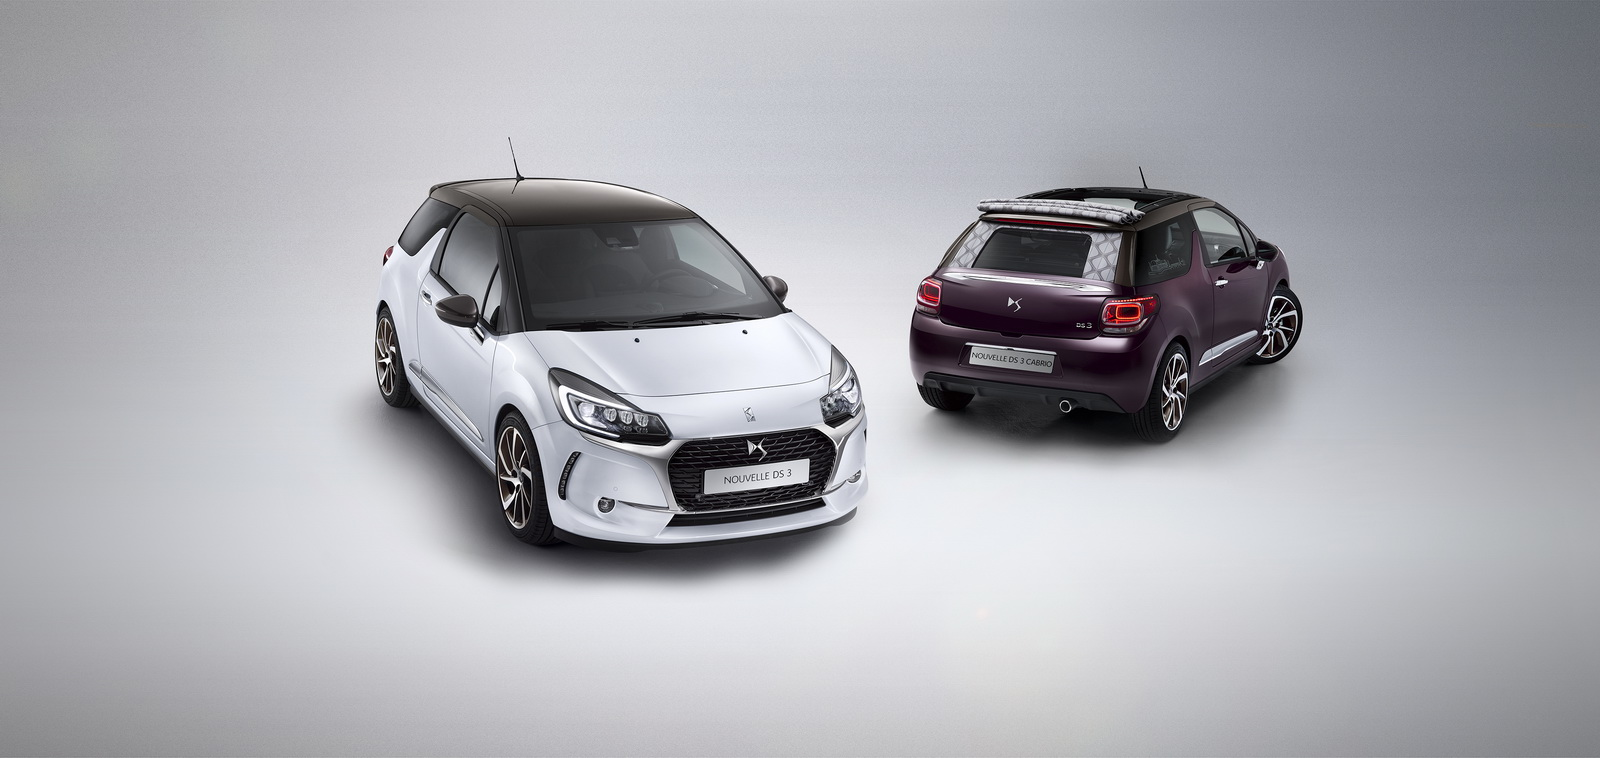 La DS 3 modernisée, adieu les chevrons ! - Photo n°6